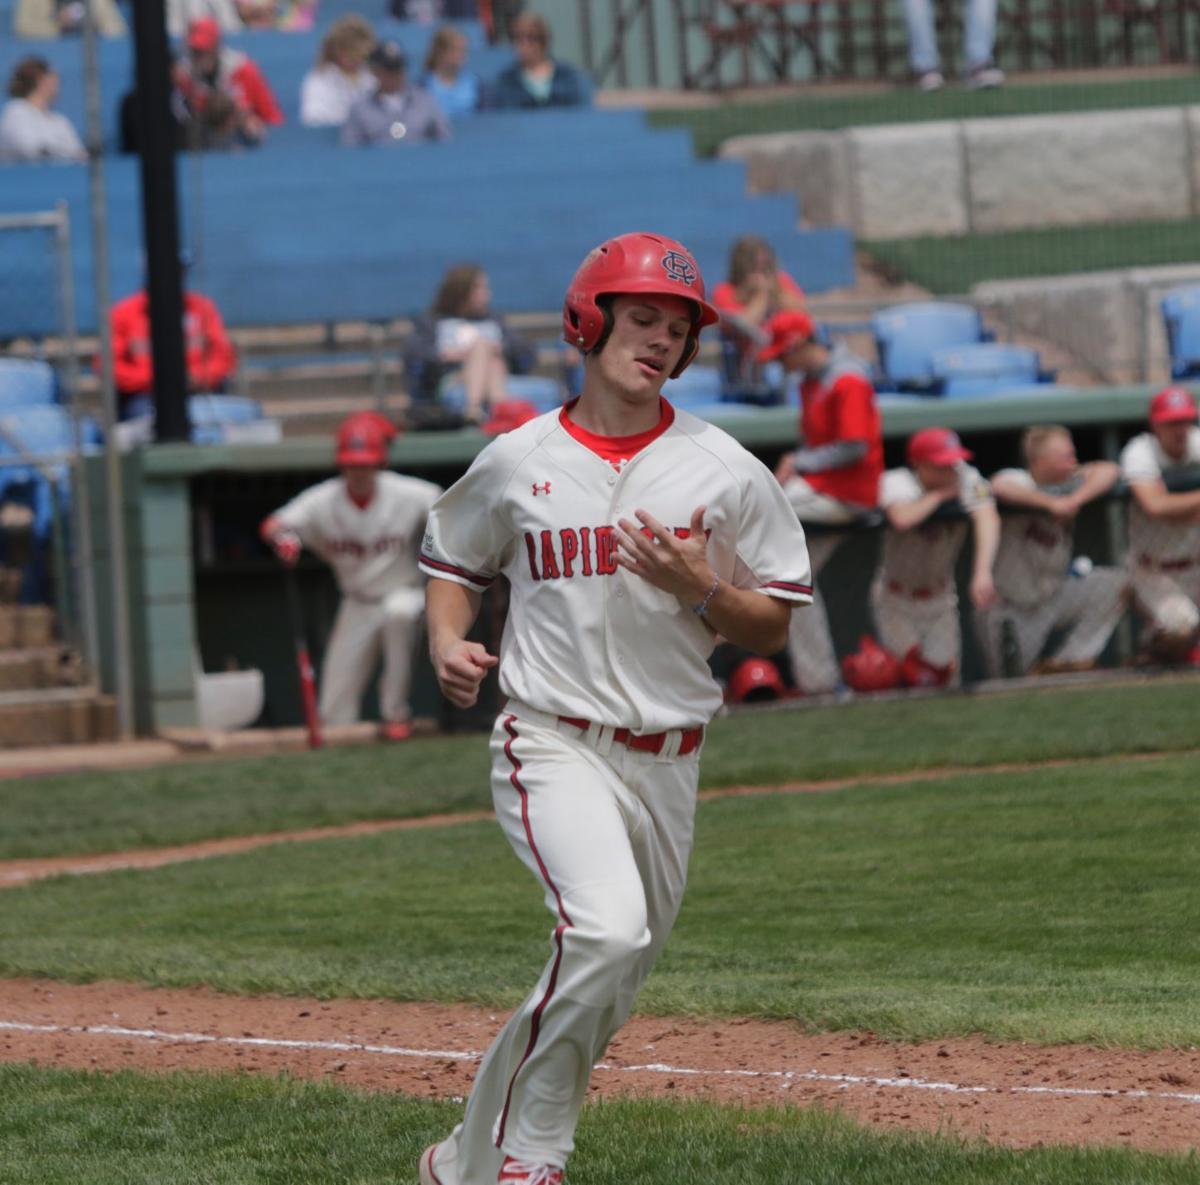 Post 22 No-hit In Loss To Cheyenne Post 6